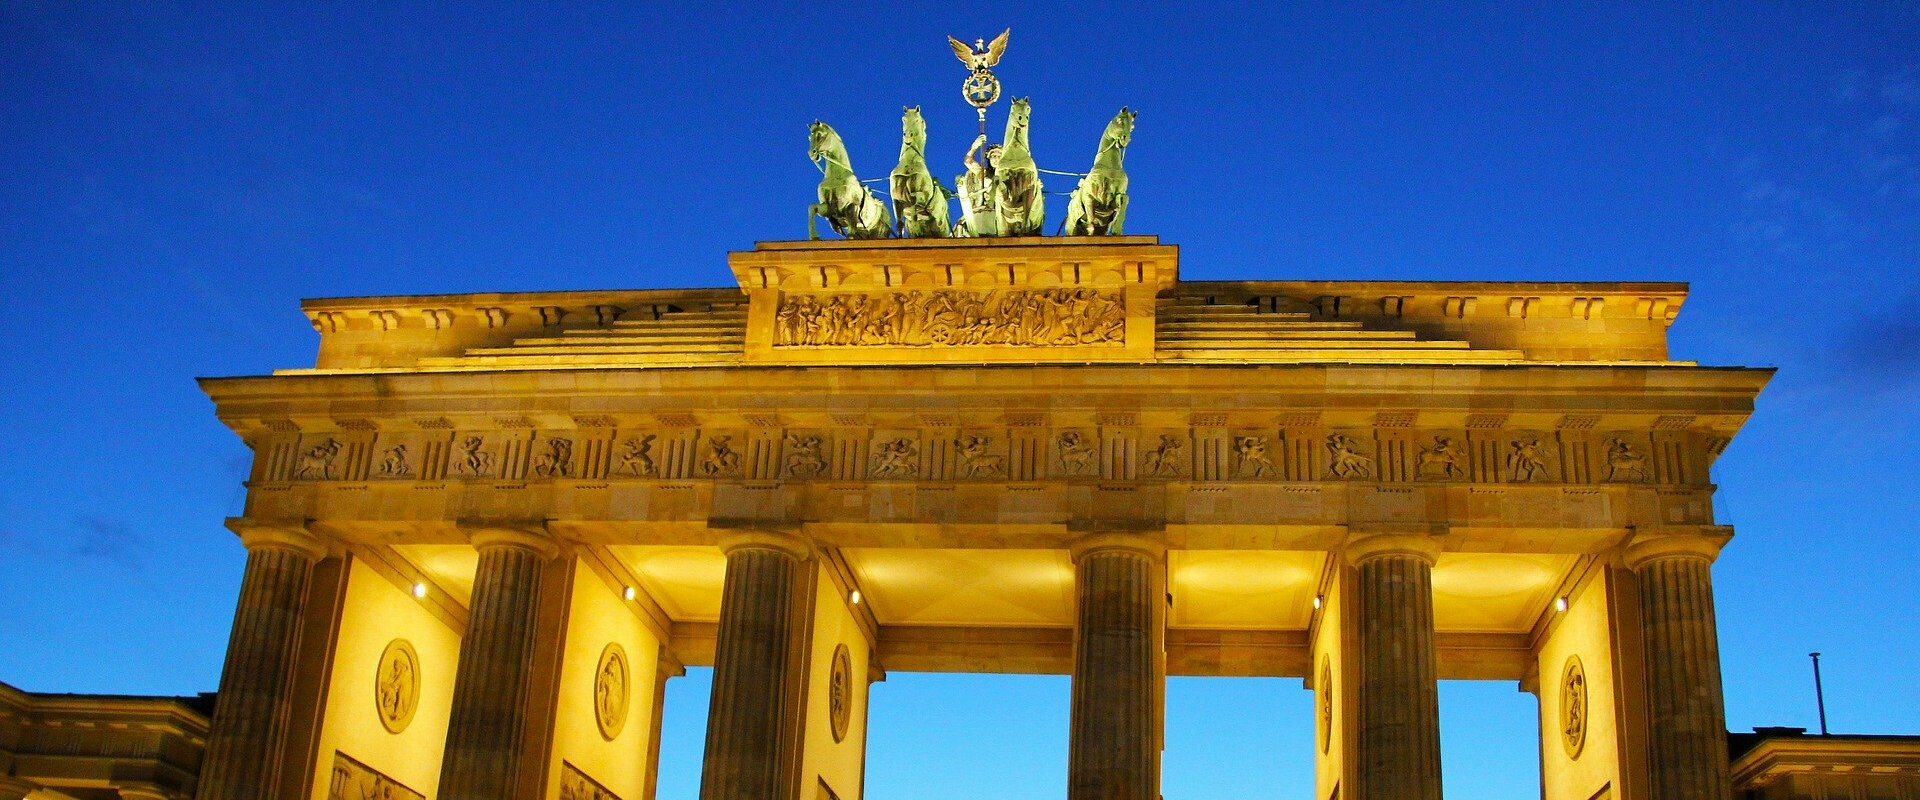 Berlin-brandenburg-gate-1920x800